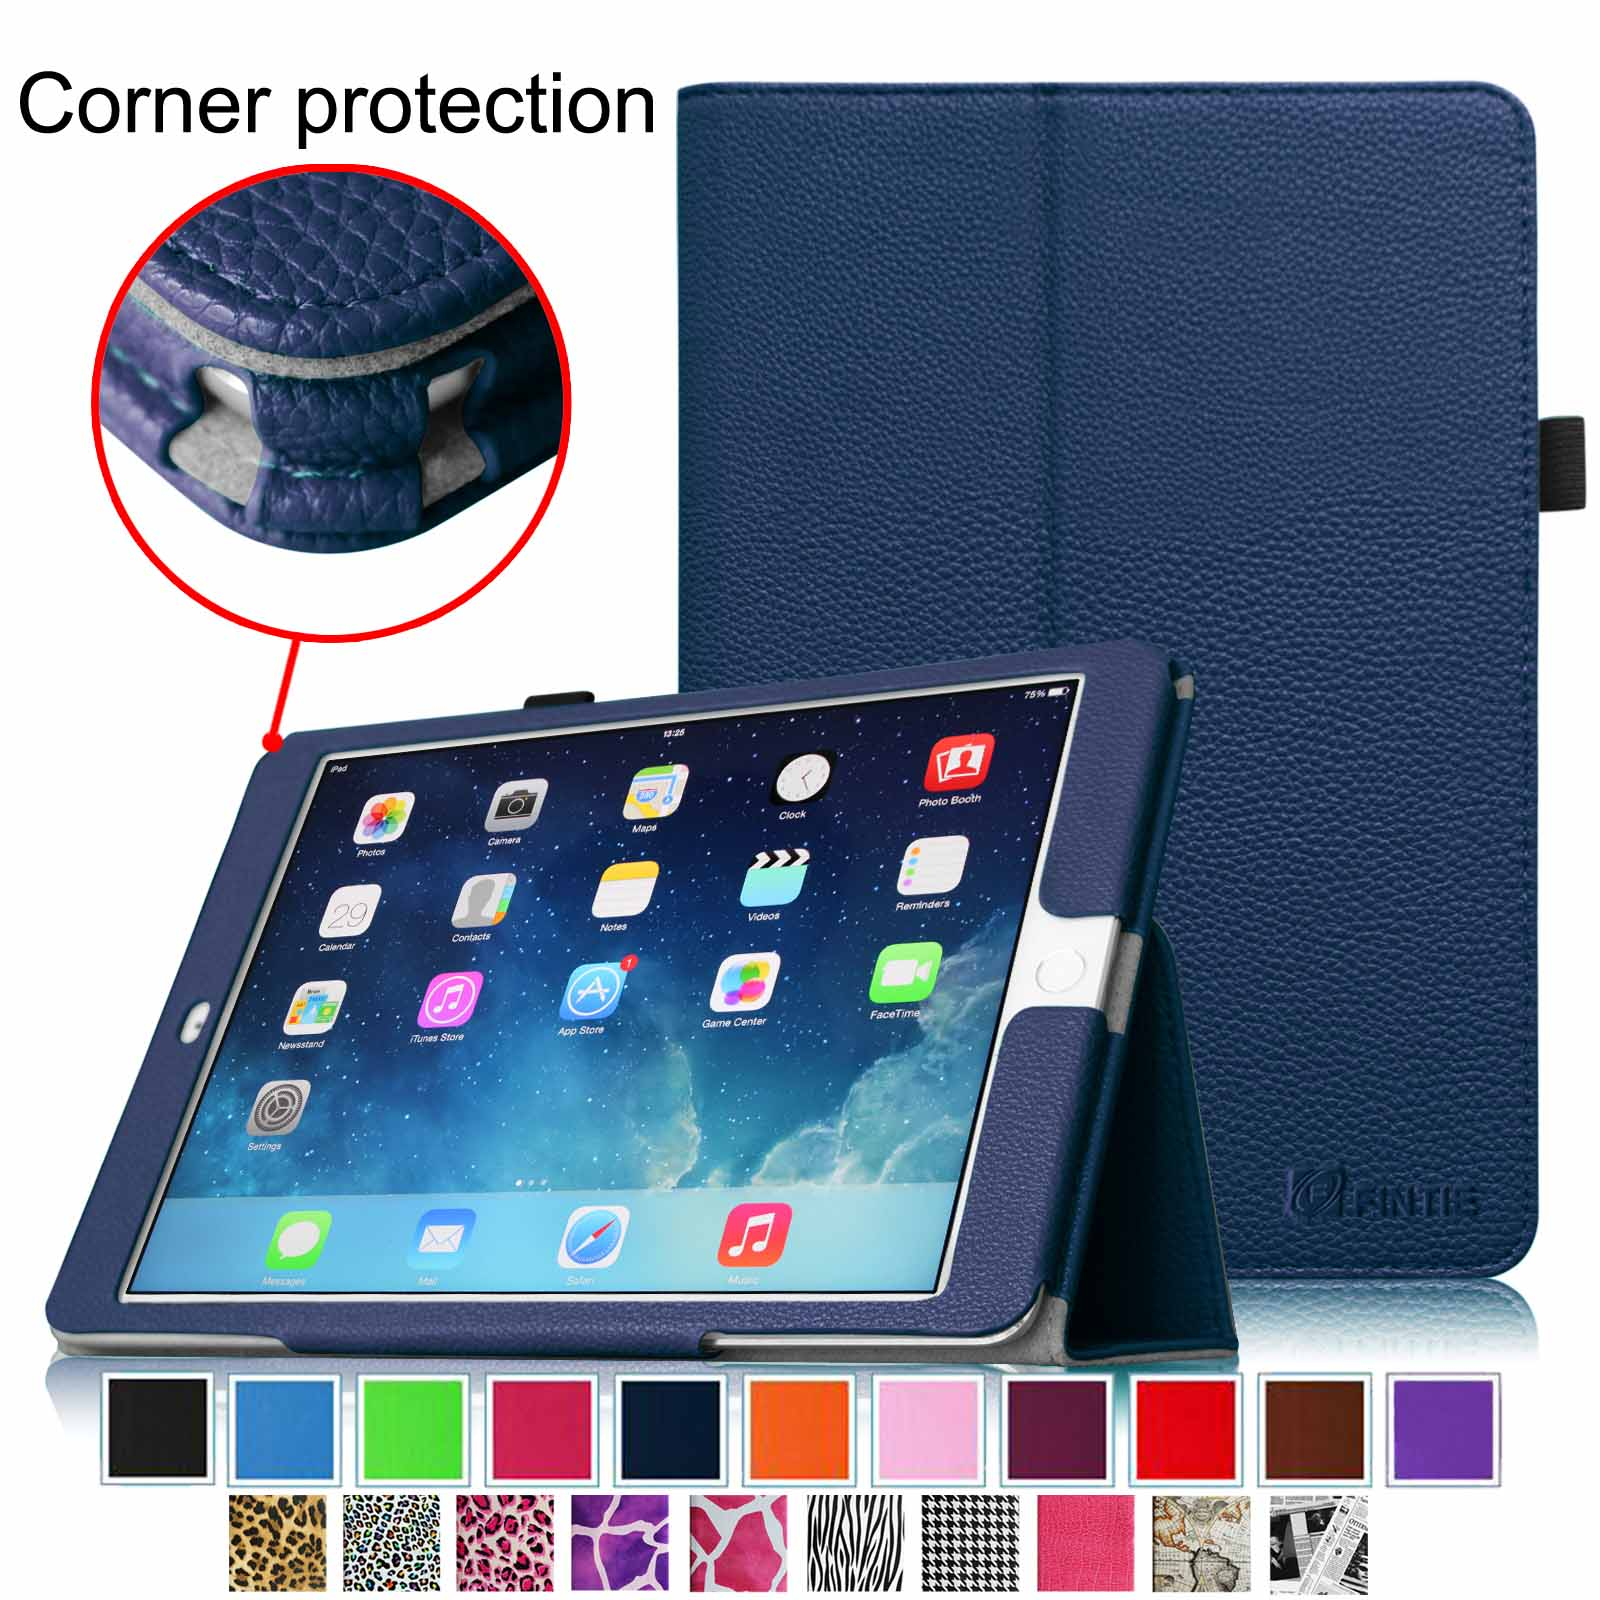 iPad Air 2 Case - Fintie Slim Fit Leather Folio Cover with Auto Sleep / Wake Feature, Navy